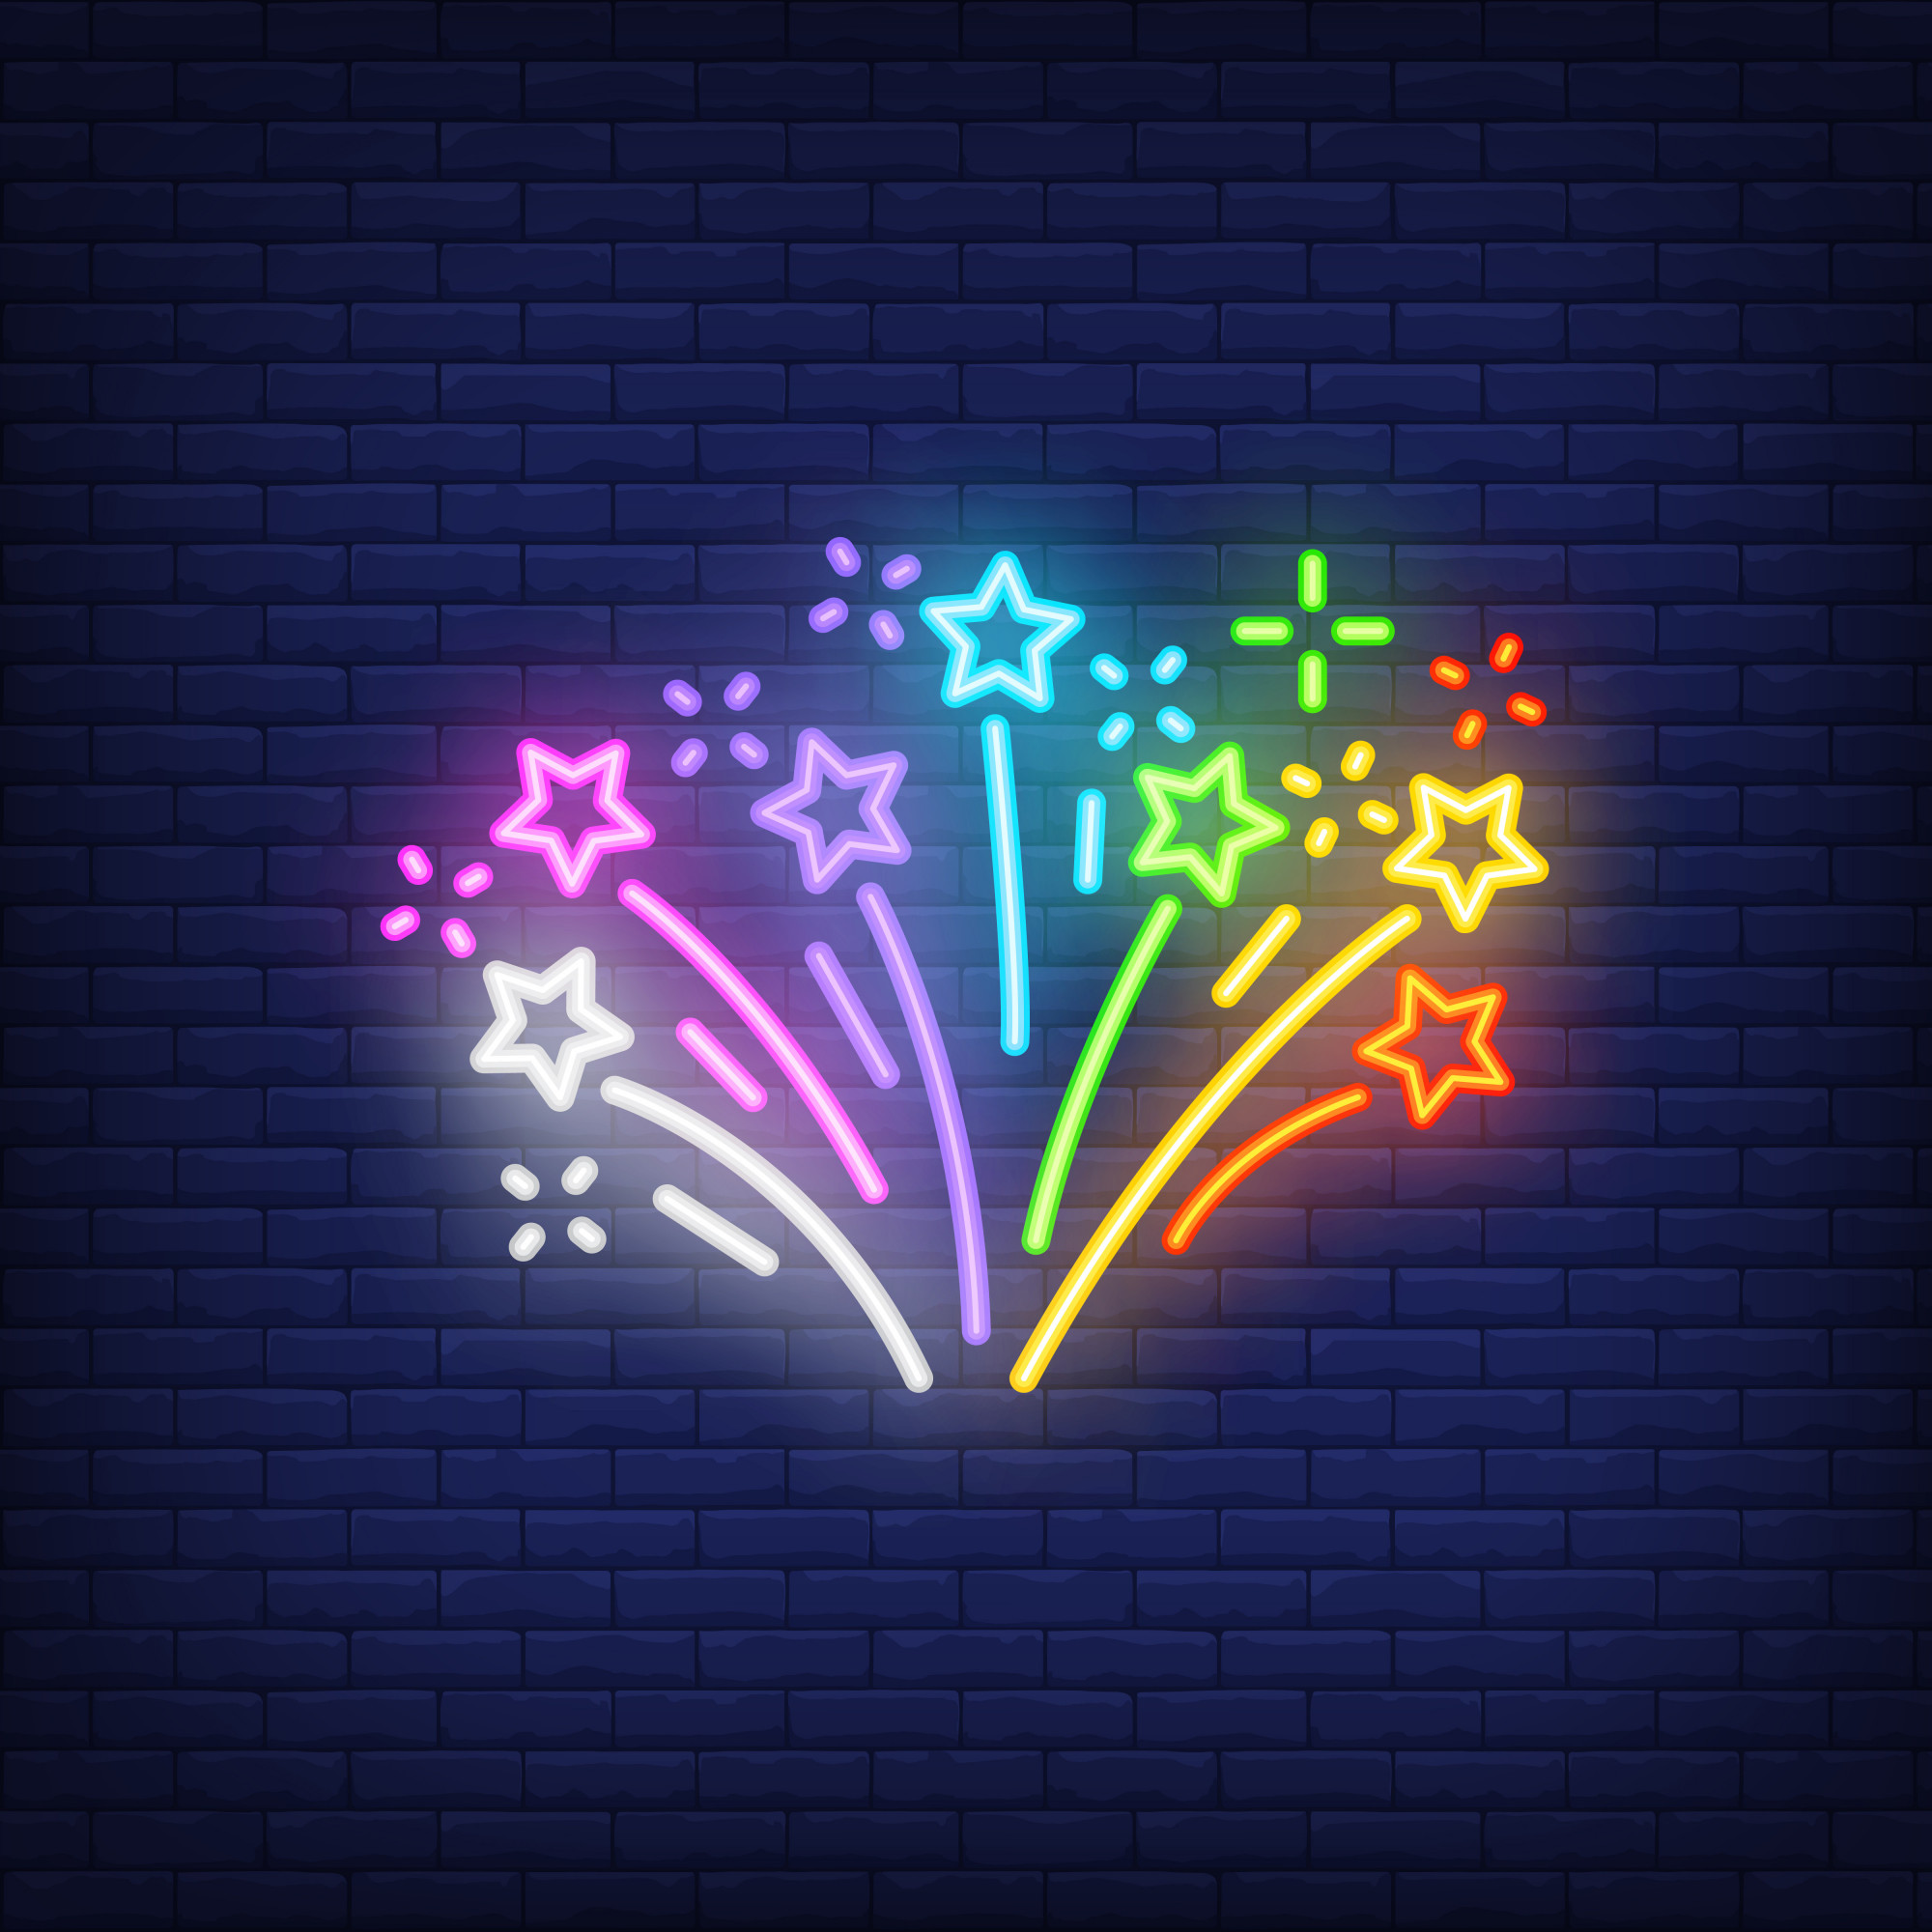 Multicolored firework on brick background. Neon style